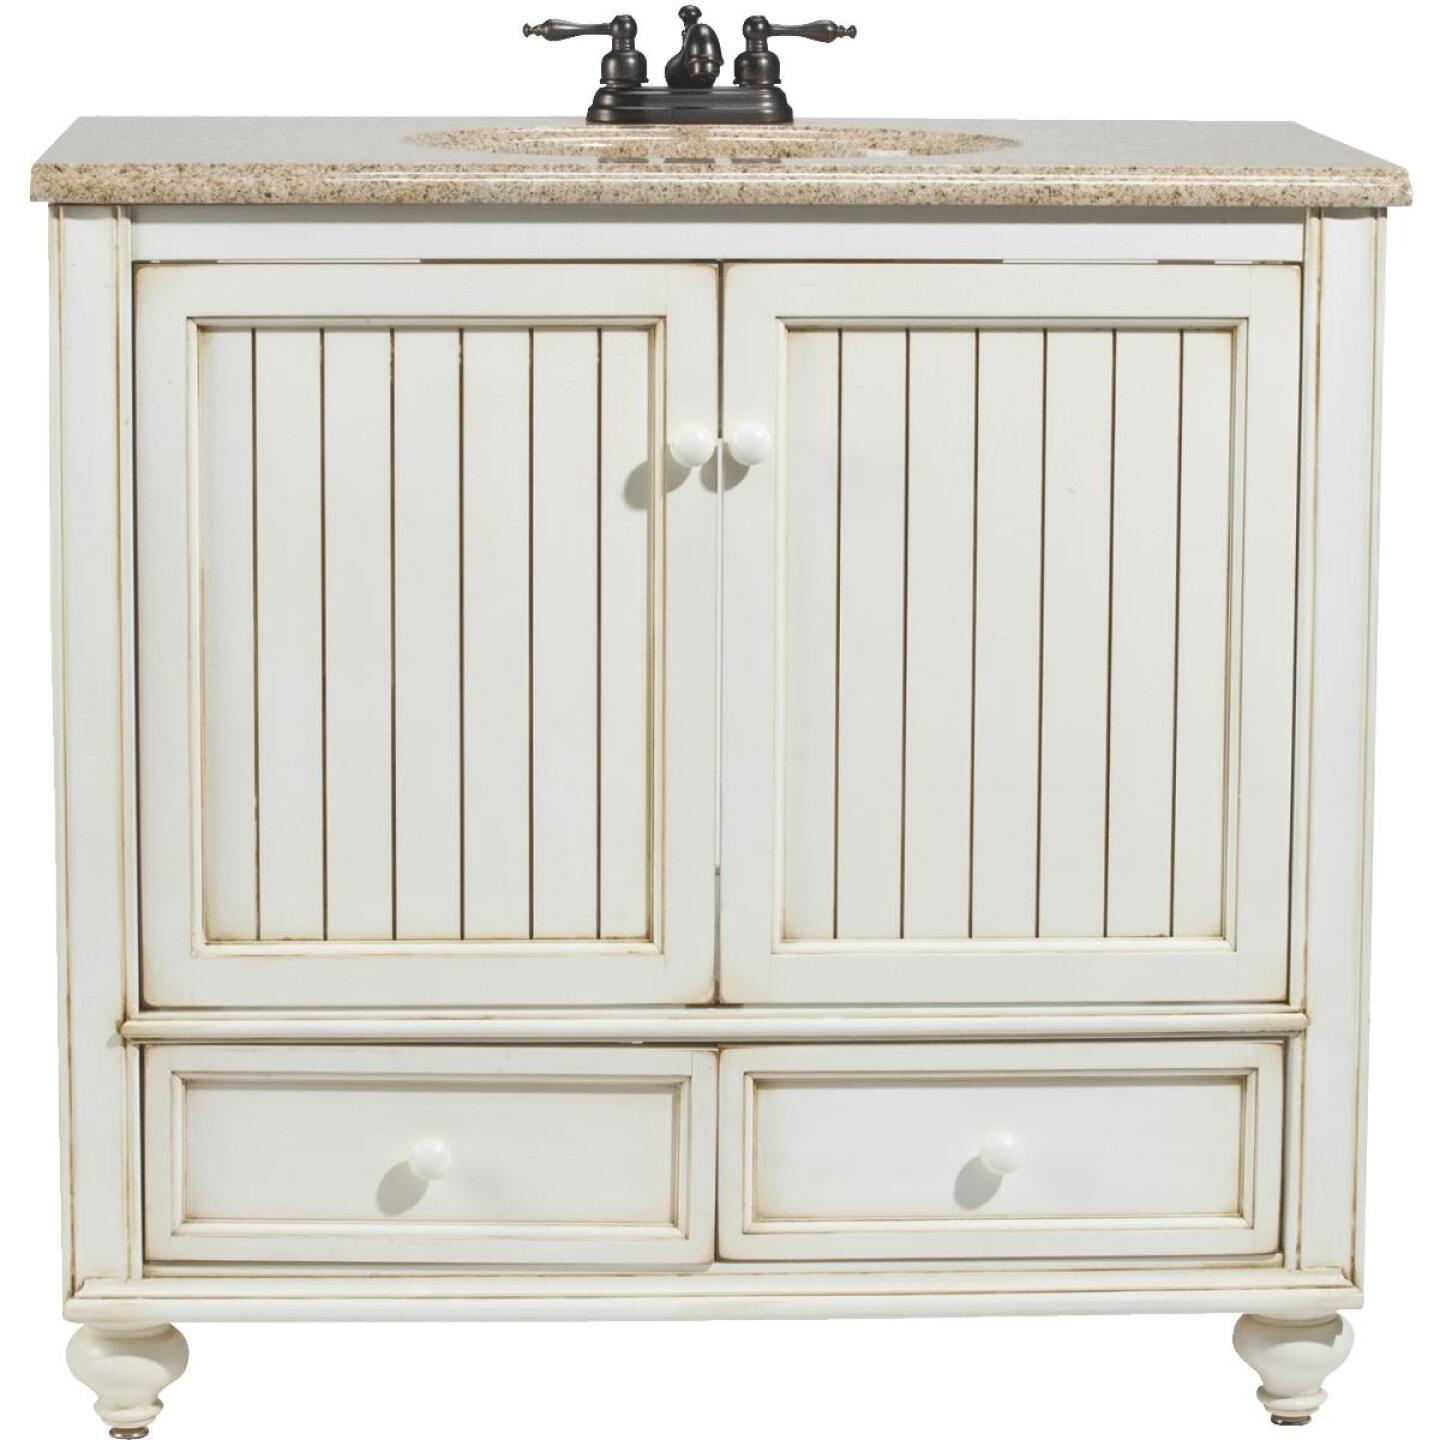 Sunny Wood Bristol Beach White 36 In. W x 34 In. H x 21 In. D Vanity Base, 2 Door/2 Drawer Image 1